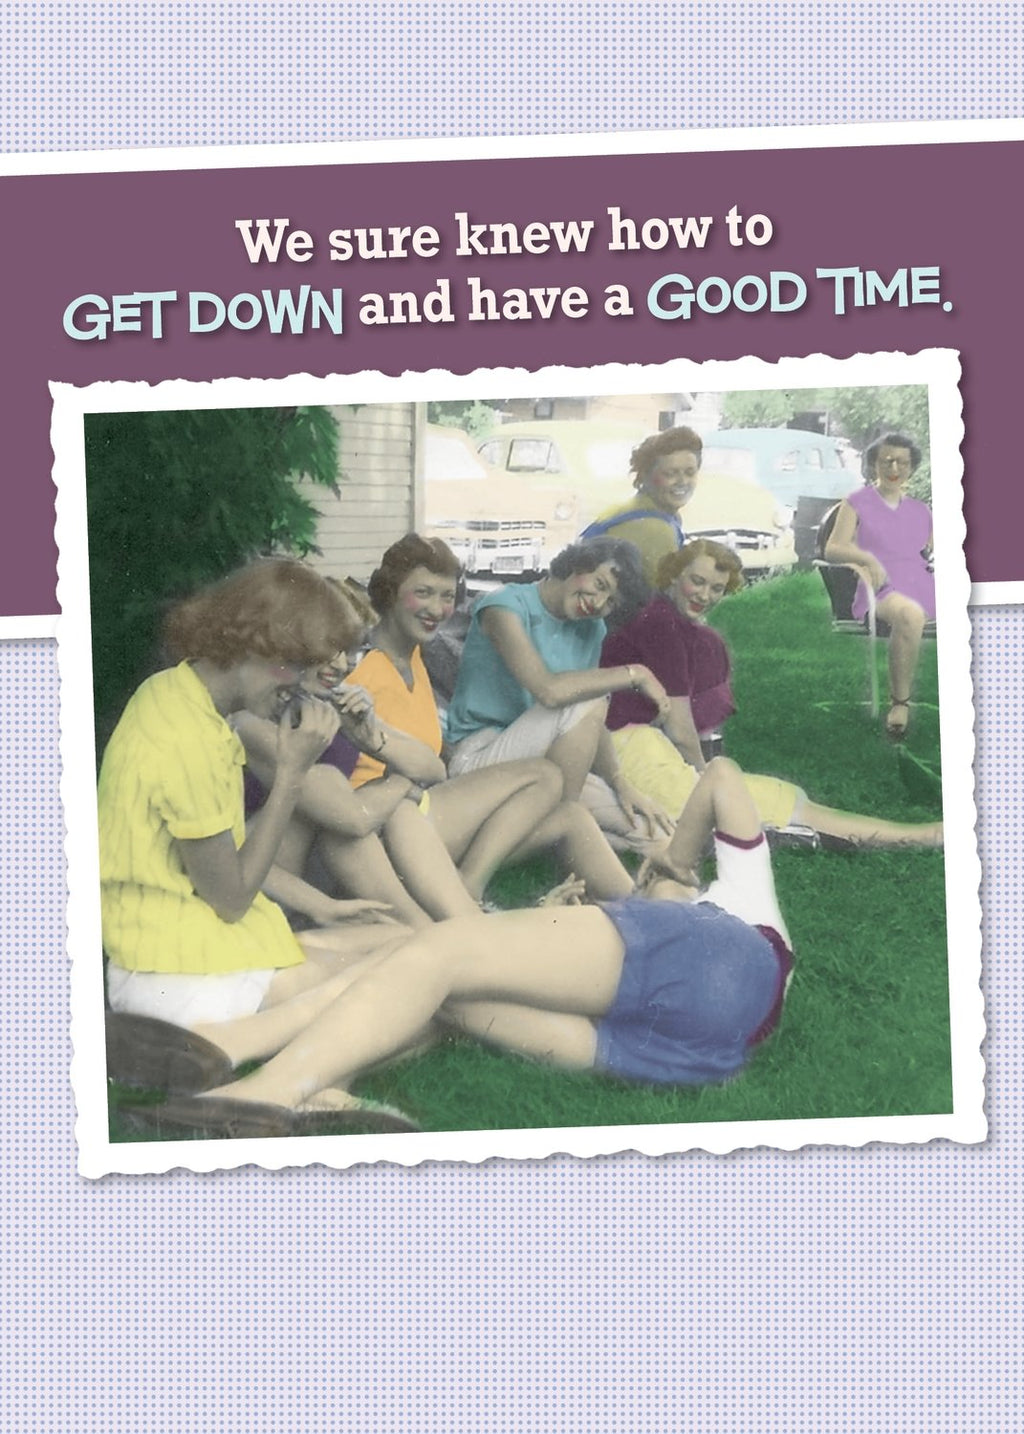 We Knew How to Get Down - Birthday Card